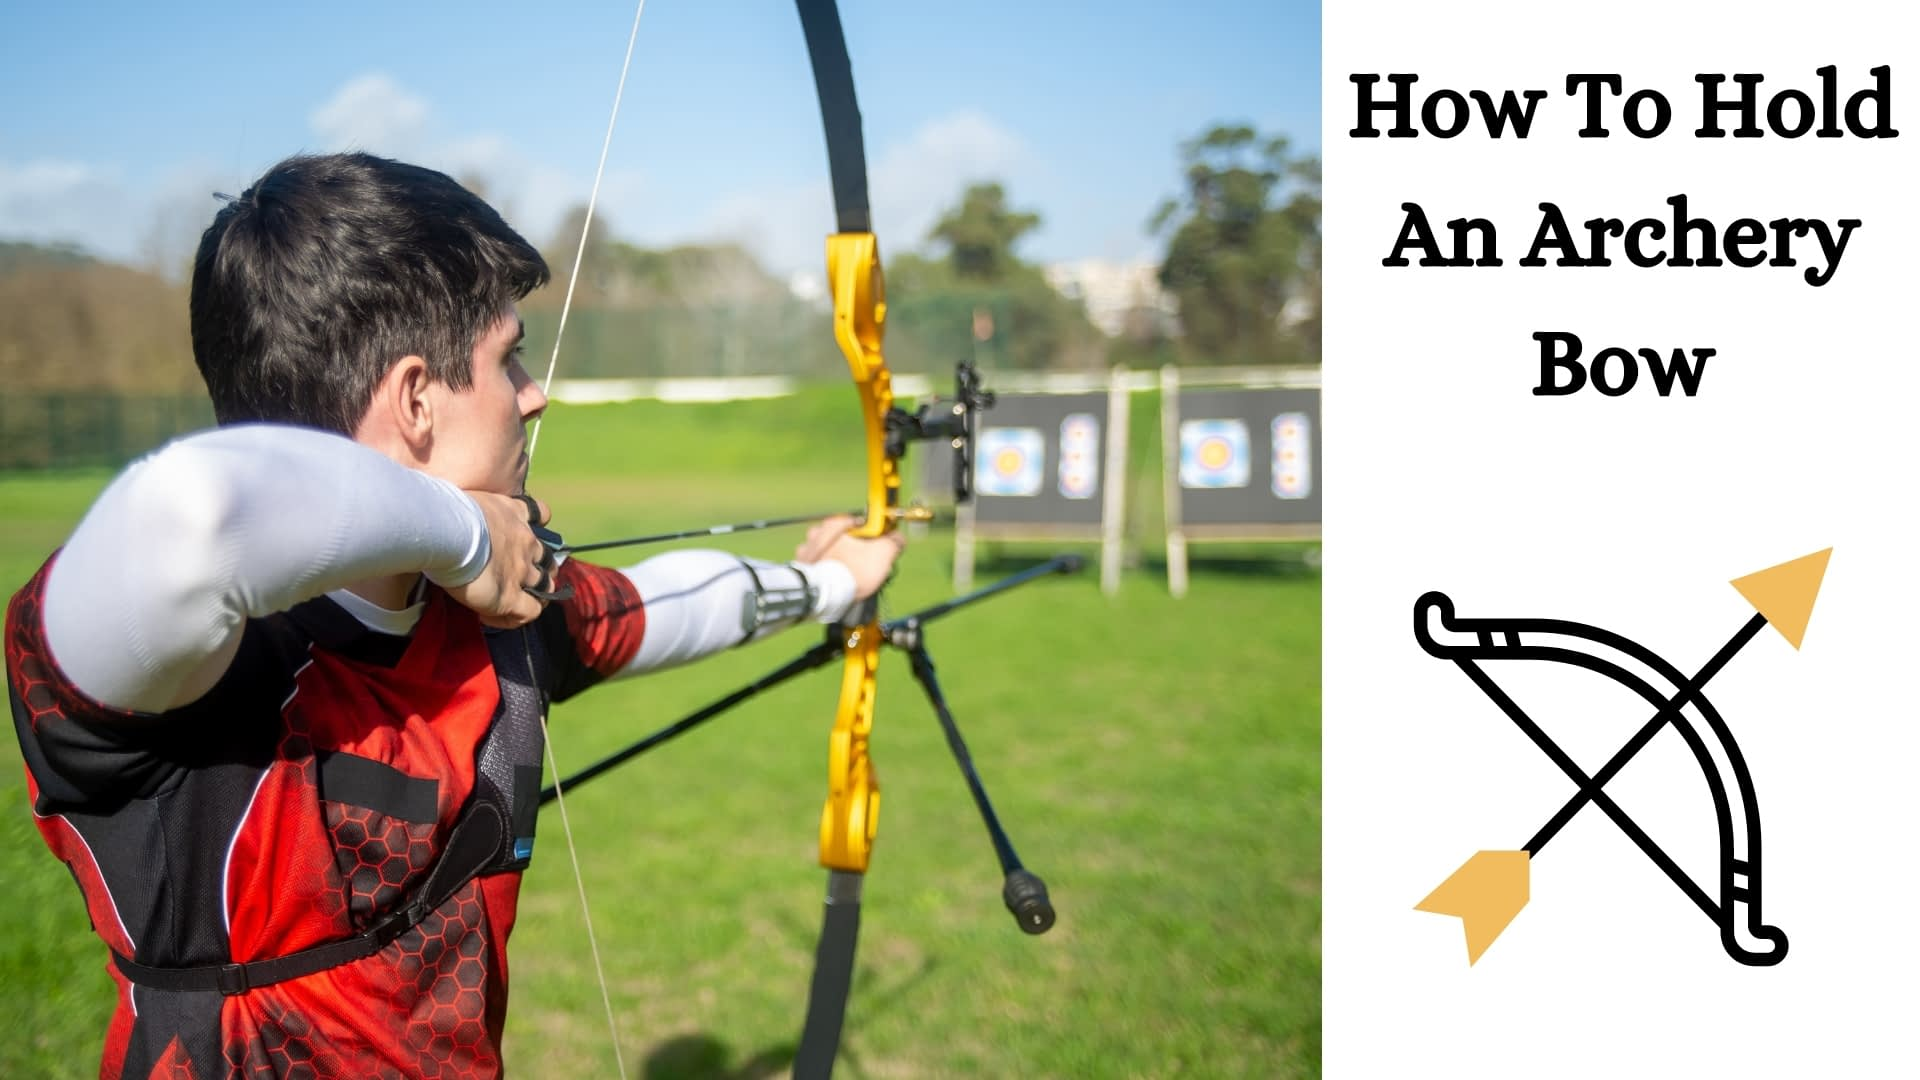 How To Hold An Archery Bow